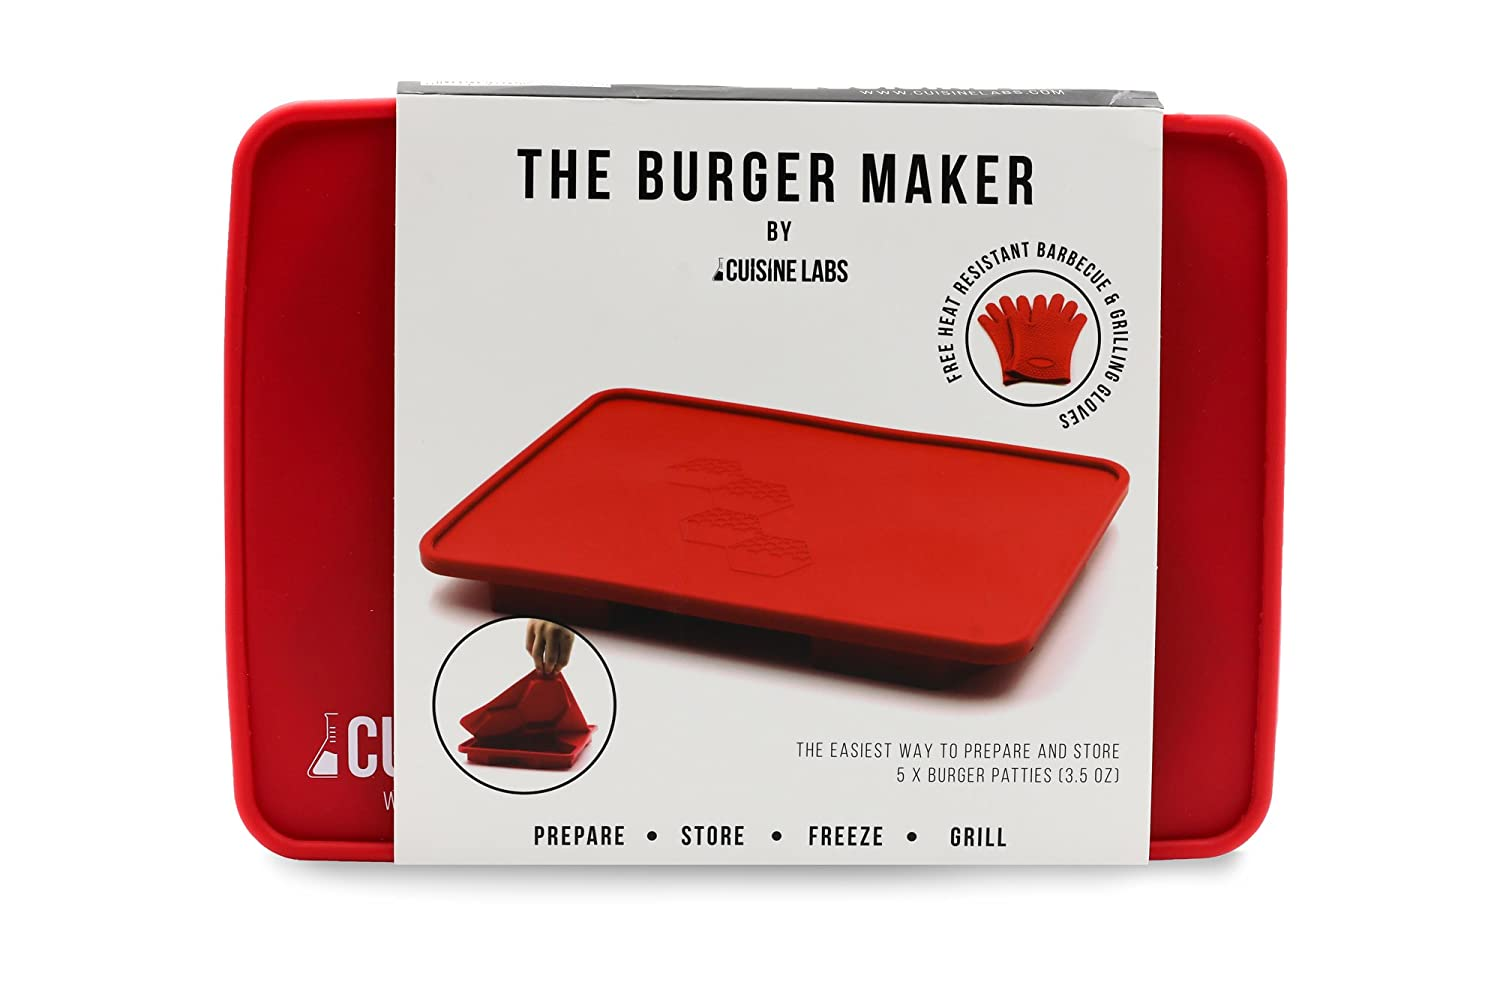 The Burger Maker 5 in 1 Innovative Silicone Burger Press and Freezer Container, with Free Silicone Barbecue Gloves. Best Oven, BBQ Grilling Heat Protection